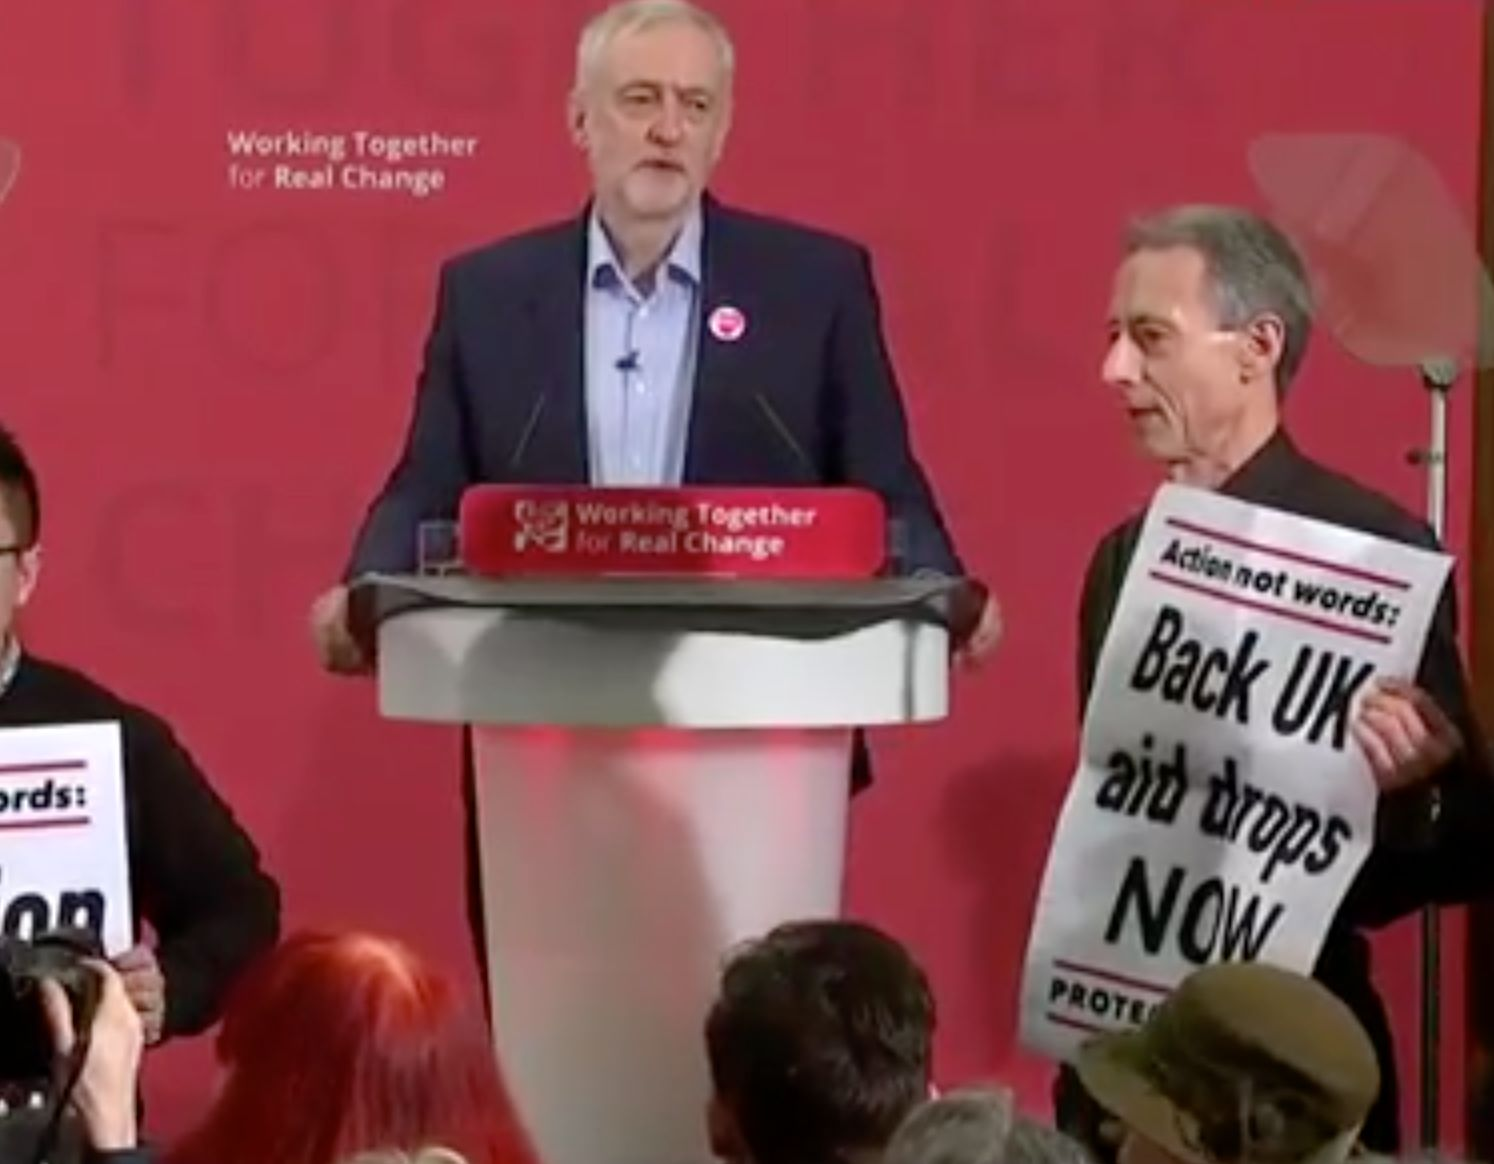 Protesters Led By Peter Tatchell Interrupt Jeremy Corbyn Speech To Demand Action On